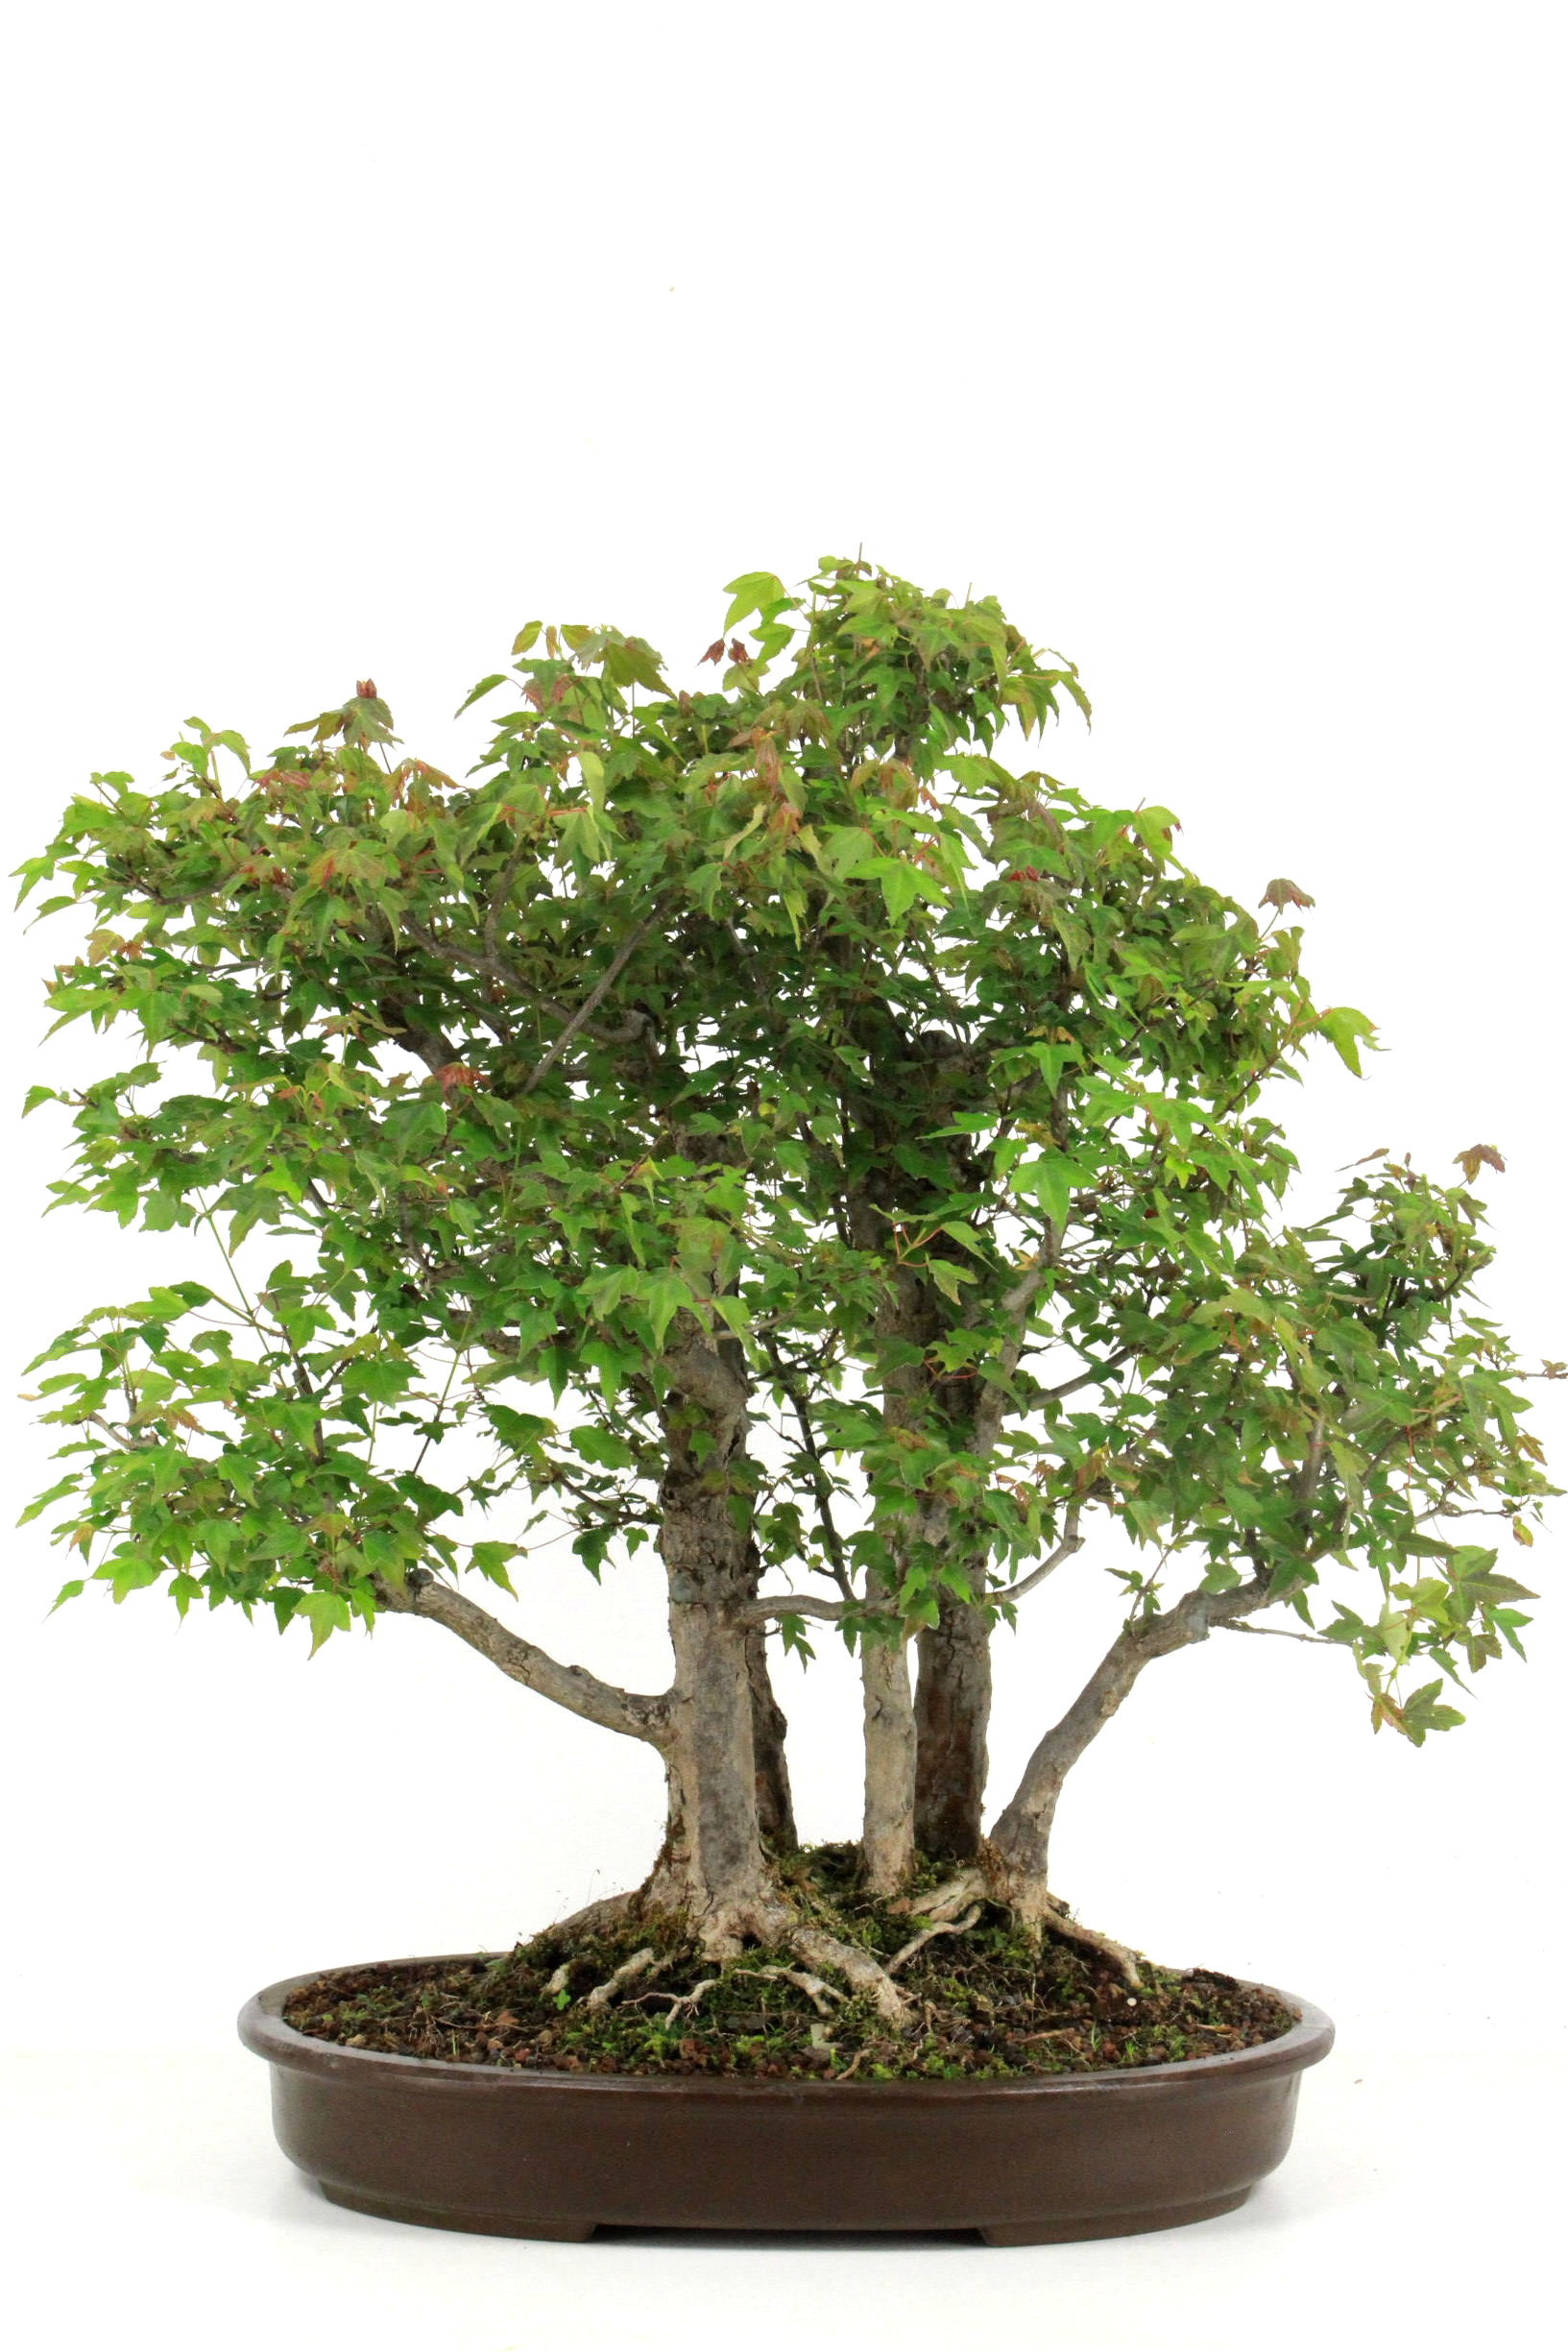 Bonsai dreispitz ahorn 62 cm 4026 bei oyaki bonsai kaufen for Bonsai onlineshop